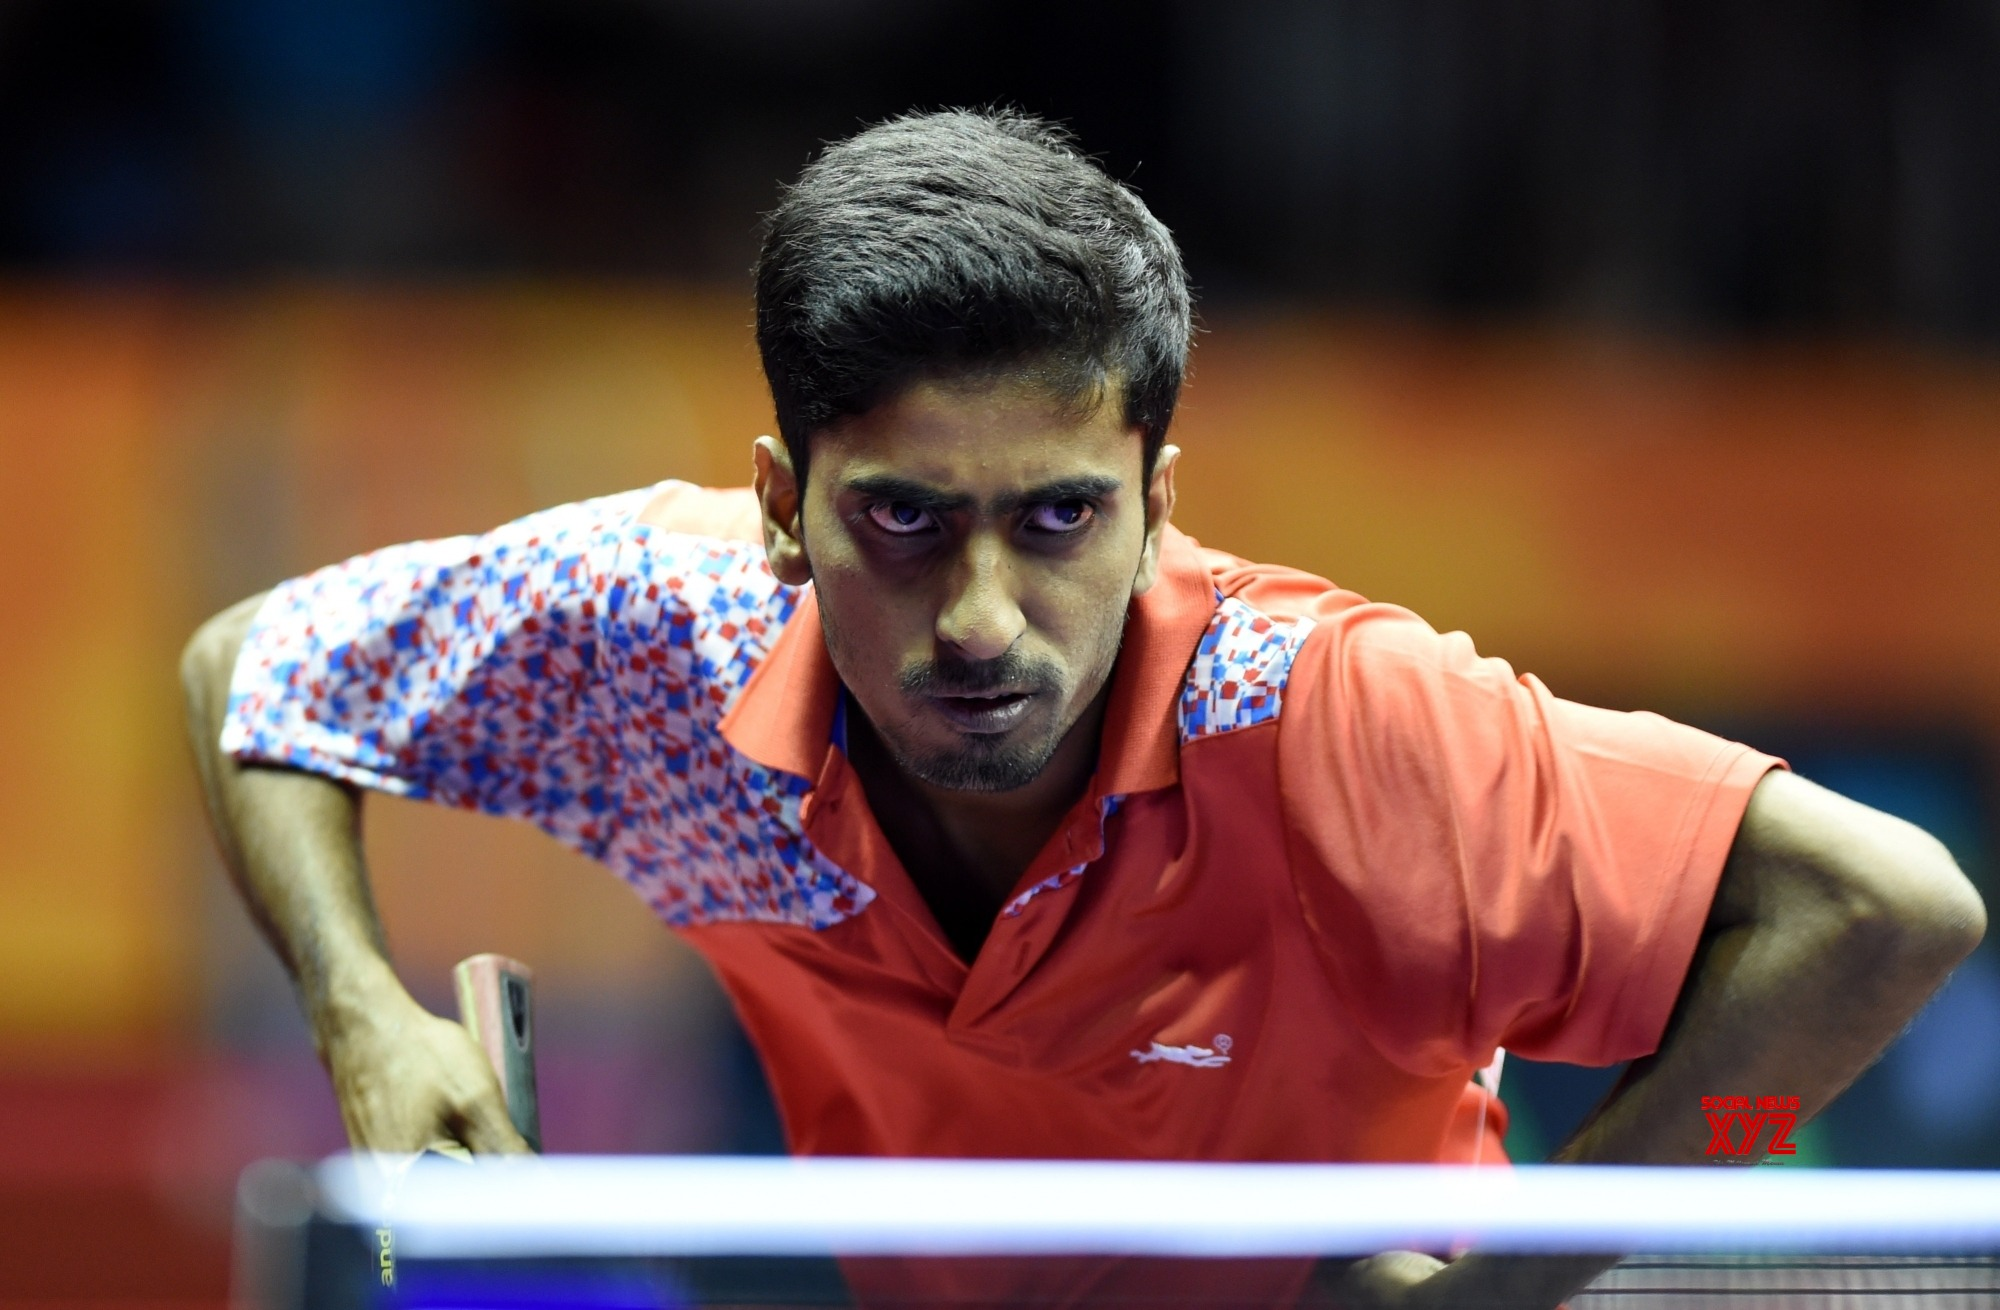 Paddler Sathiyan bows out of Austrian Open